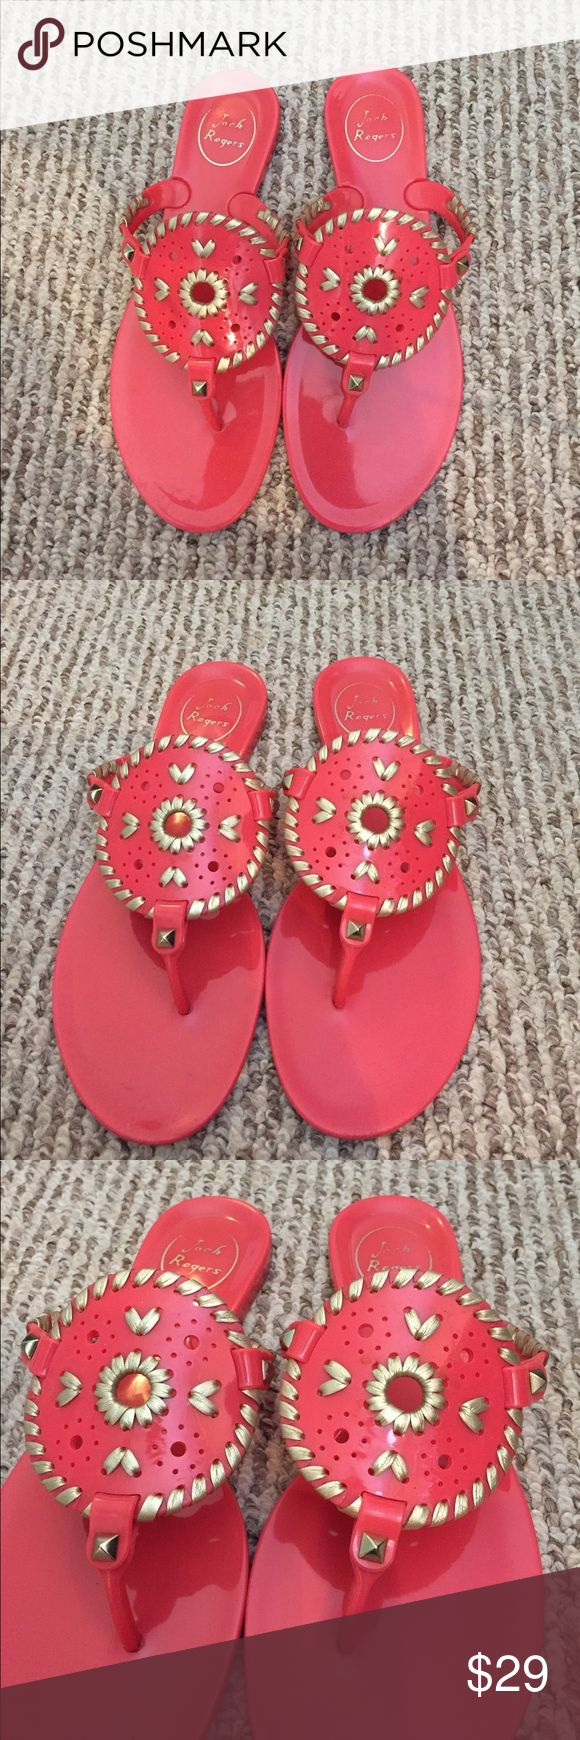 Jack Rogers Women's Jelly sandals size 7 Coral Used a handful of times Women's Jack Rogers Jelly sandals size 7 Coral. No trades. Price is firm. Thanks for shopping with us! Jack Rogers Shoes Sandals